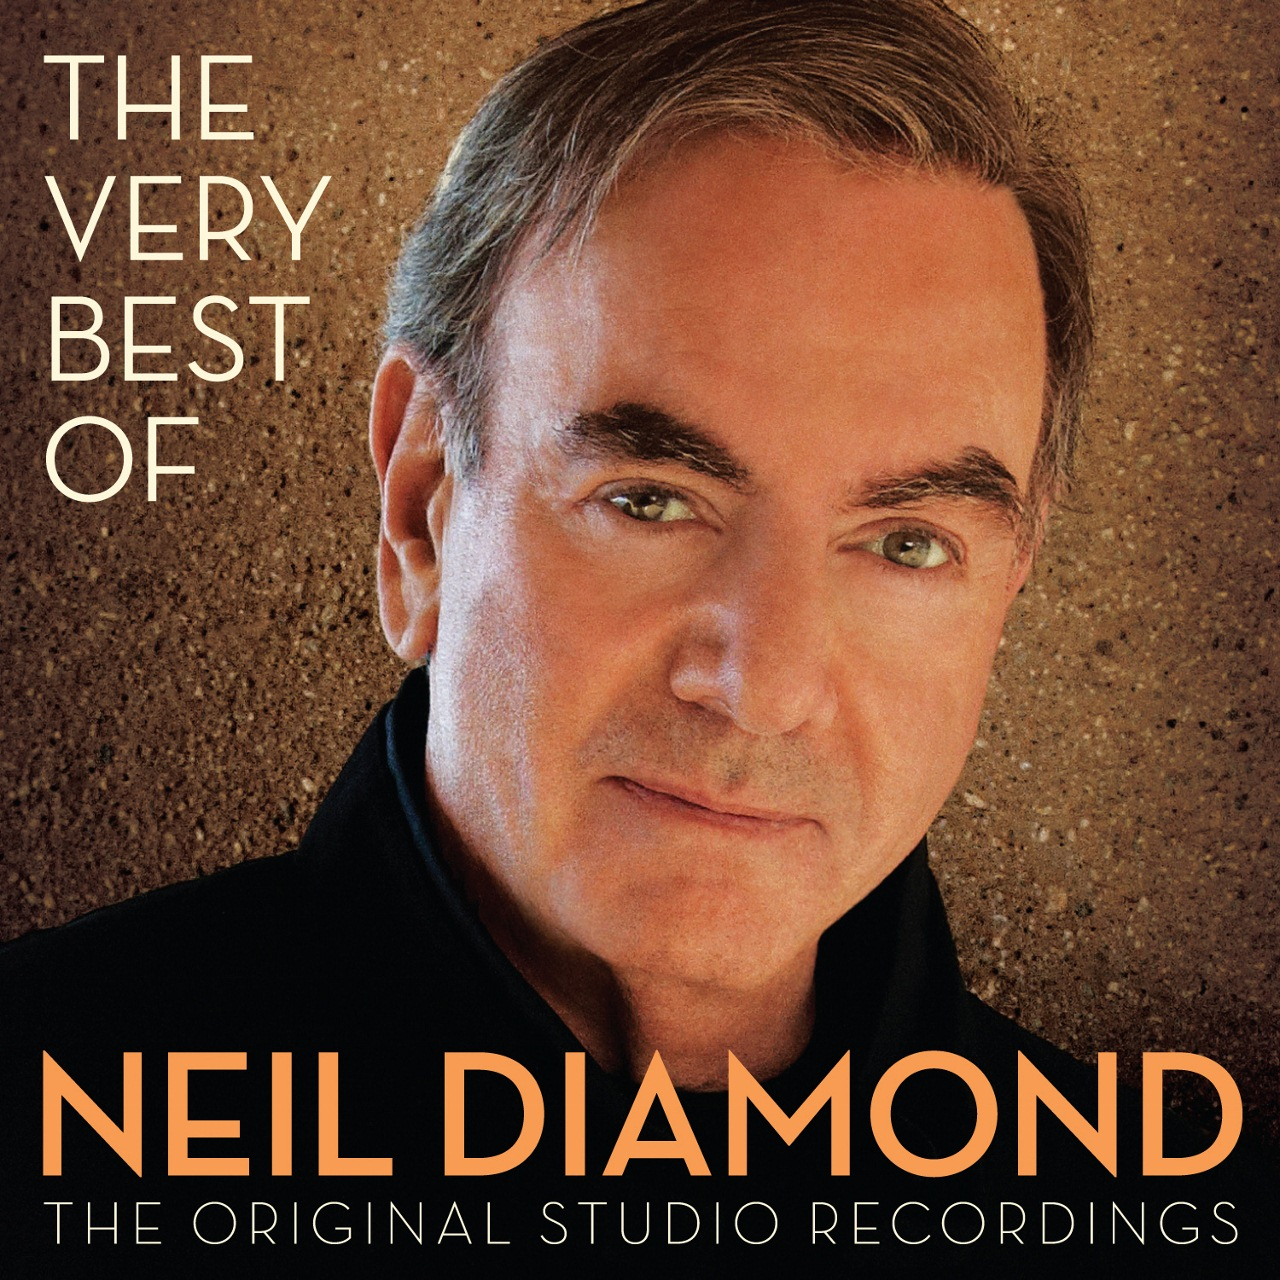 Neil diamond on the way to the beach lynne meredith golodner for Very best images